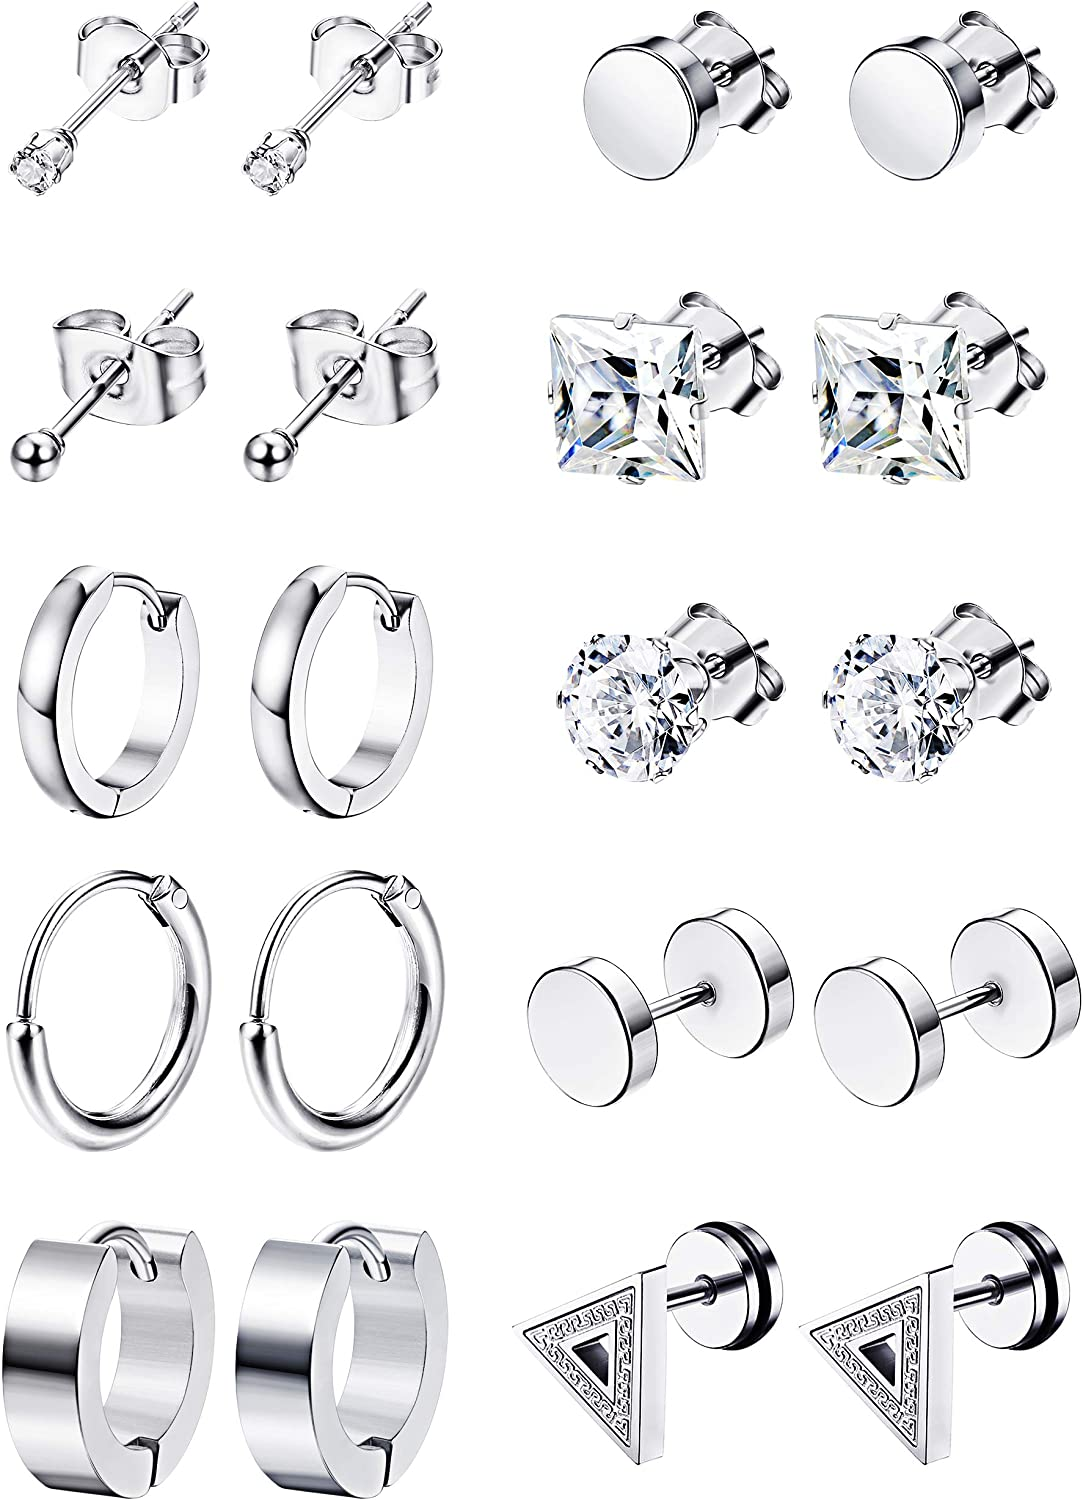 LOYALLOOK 10Pairs Stainless Steel Earrings For Men CZ Stud Earring Tiny Ball Stud Earrings Cartilage Earrings Endless Hoop Earrings For Men Silver Tone